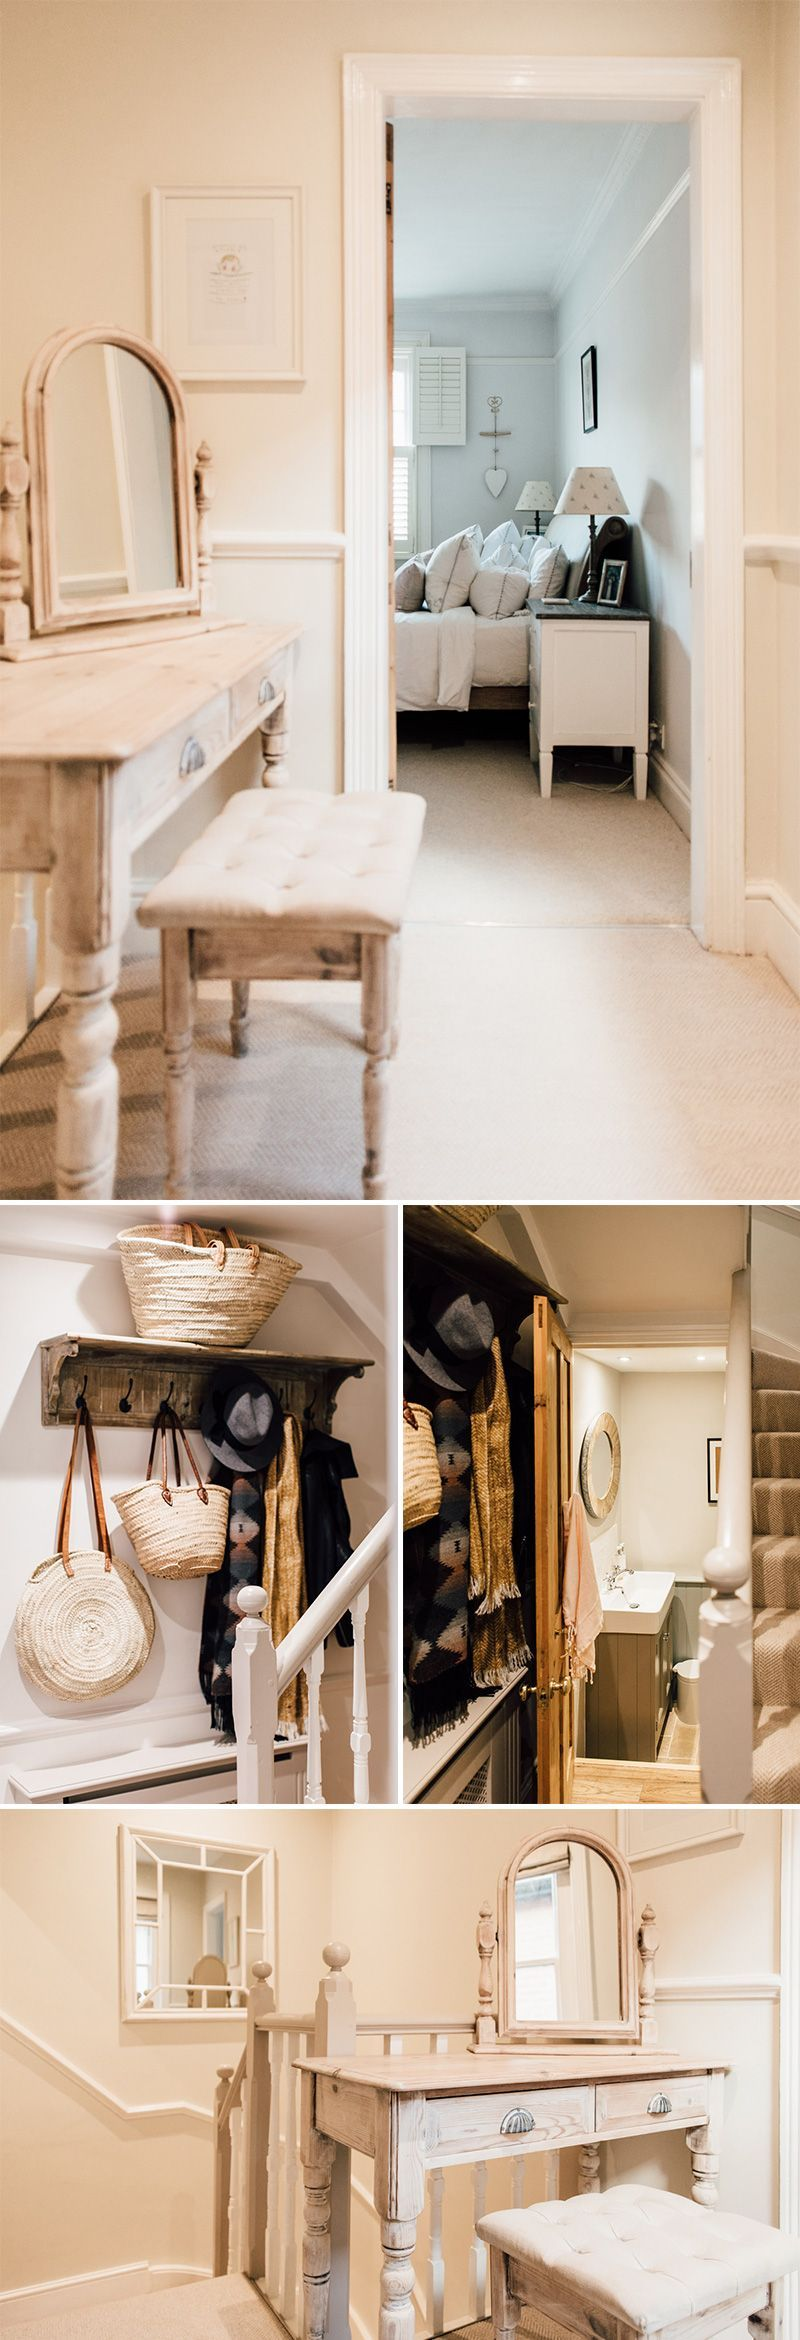 Storage for narrow hallway  Elleus Modern Country Home  Hallway Storage Ideas  Pinterest